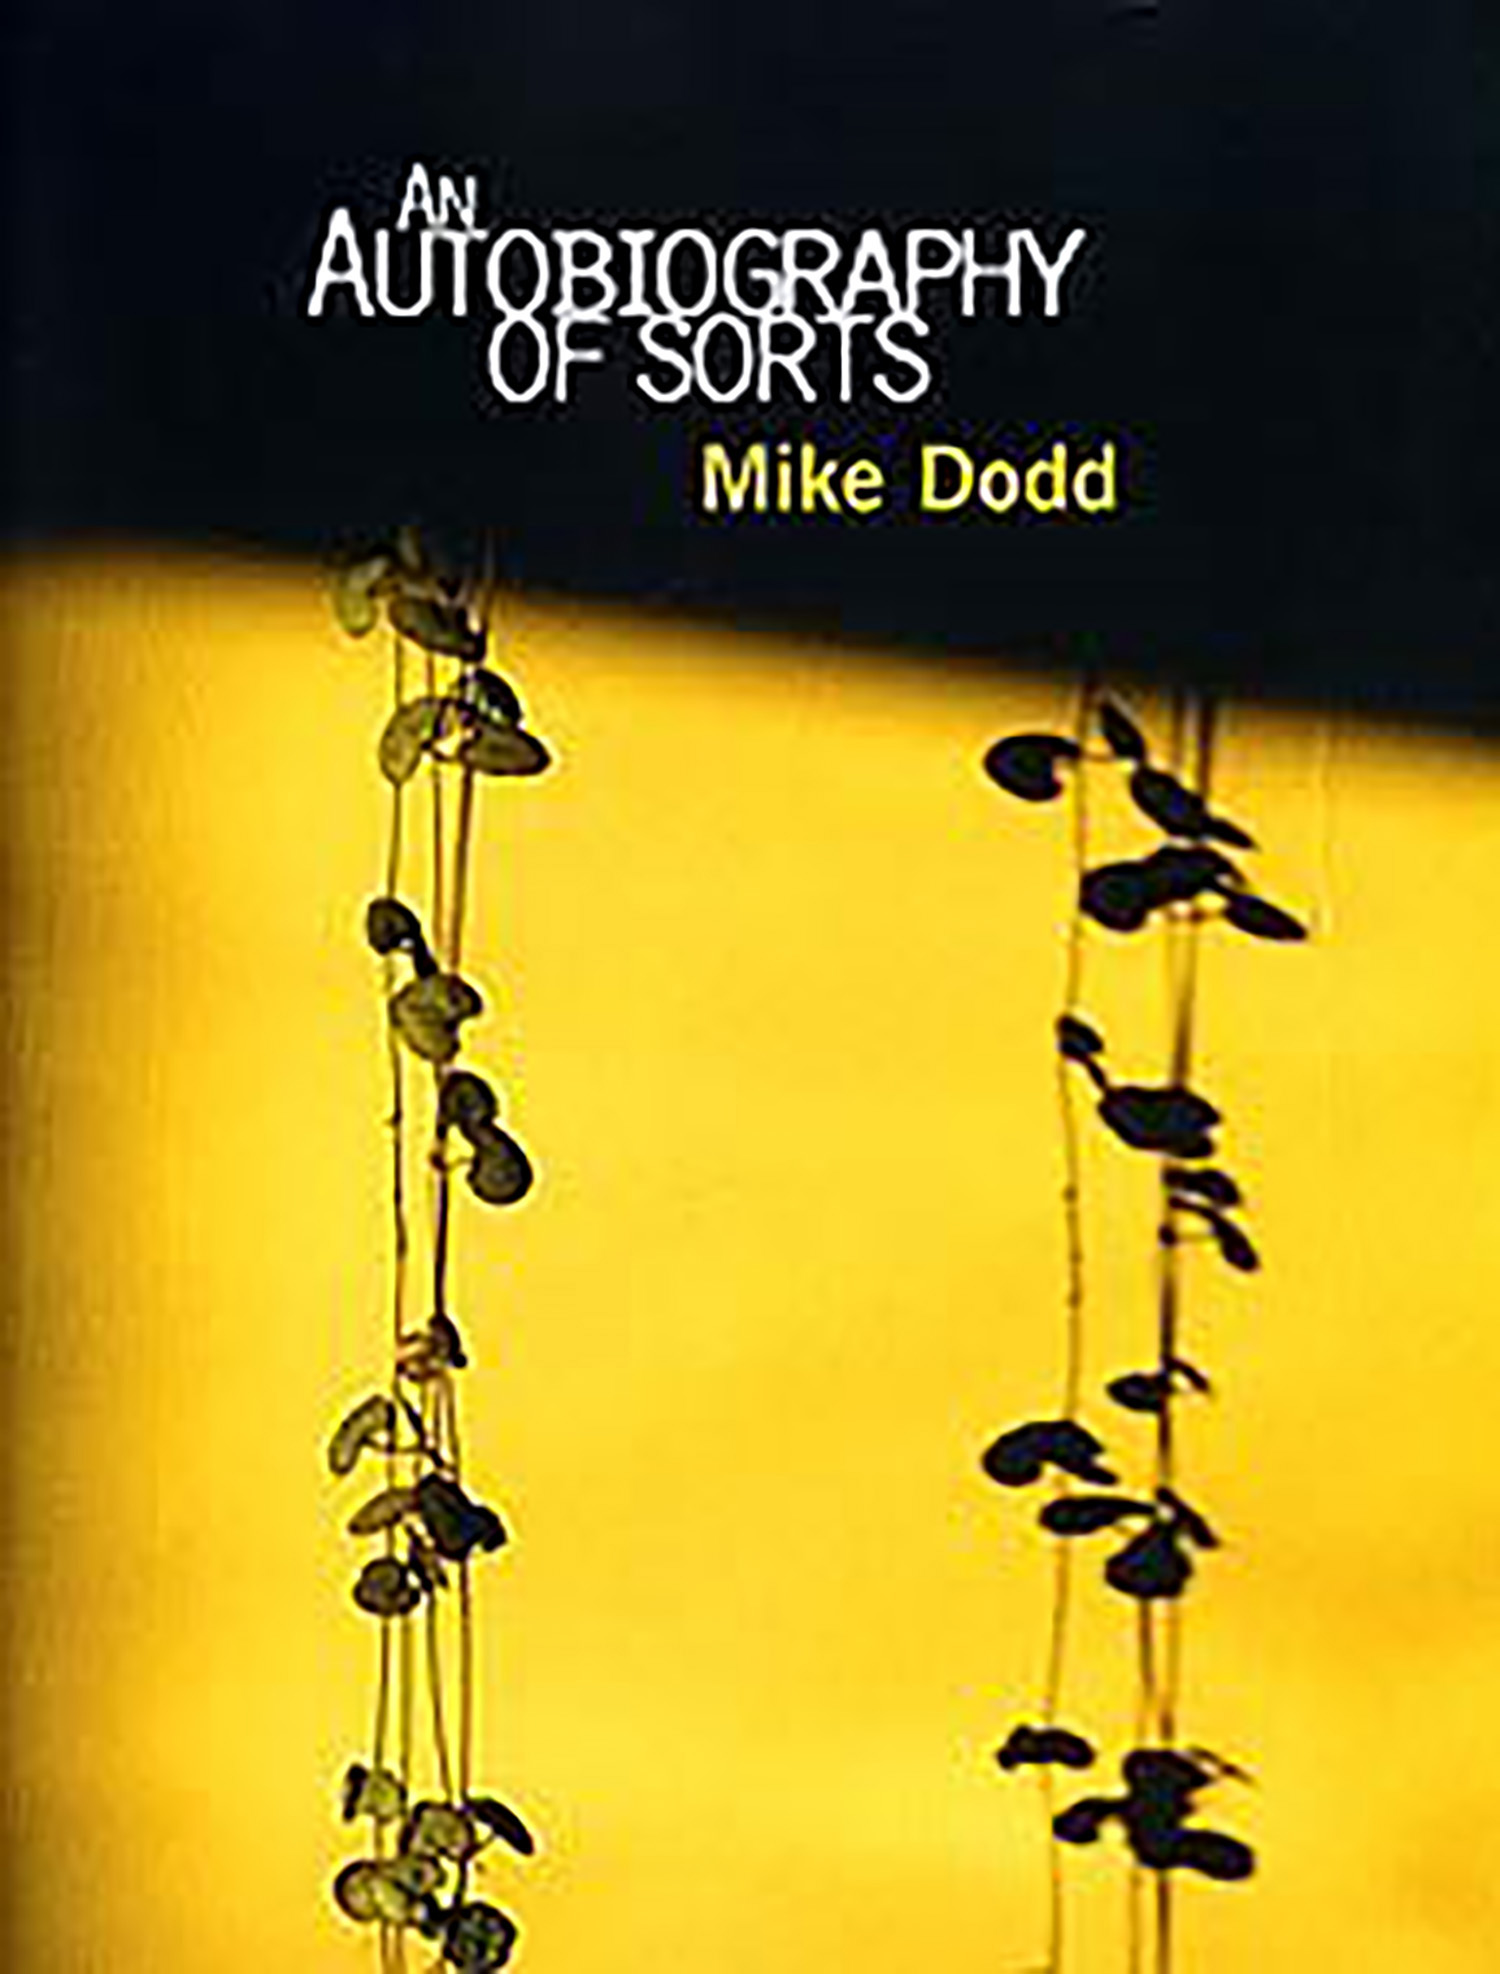 Scarva An Autobiography of Sorts - Mike Dodd 1